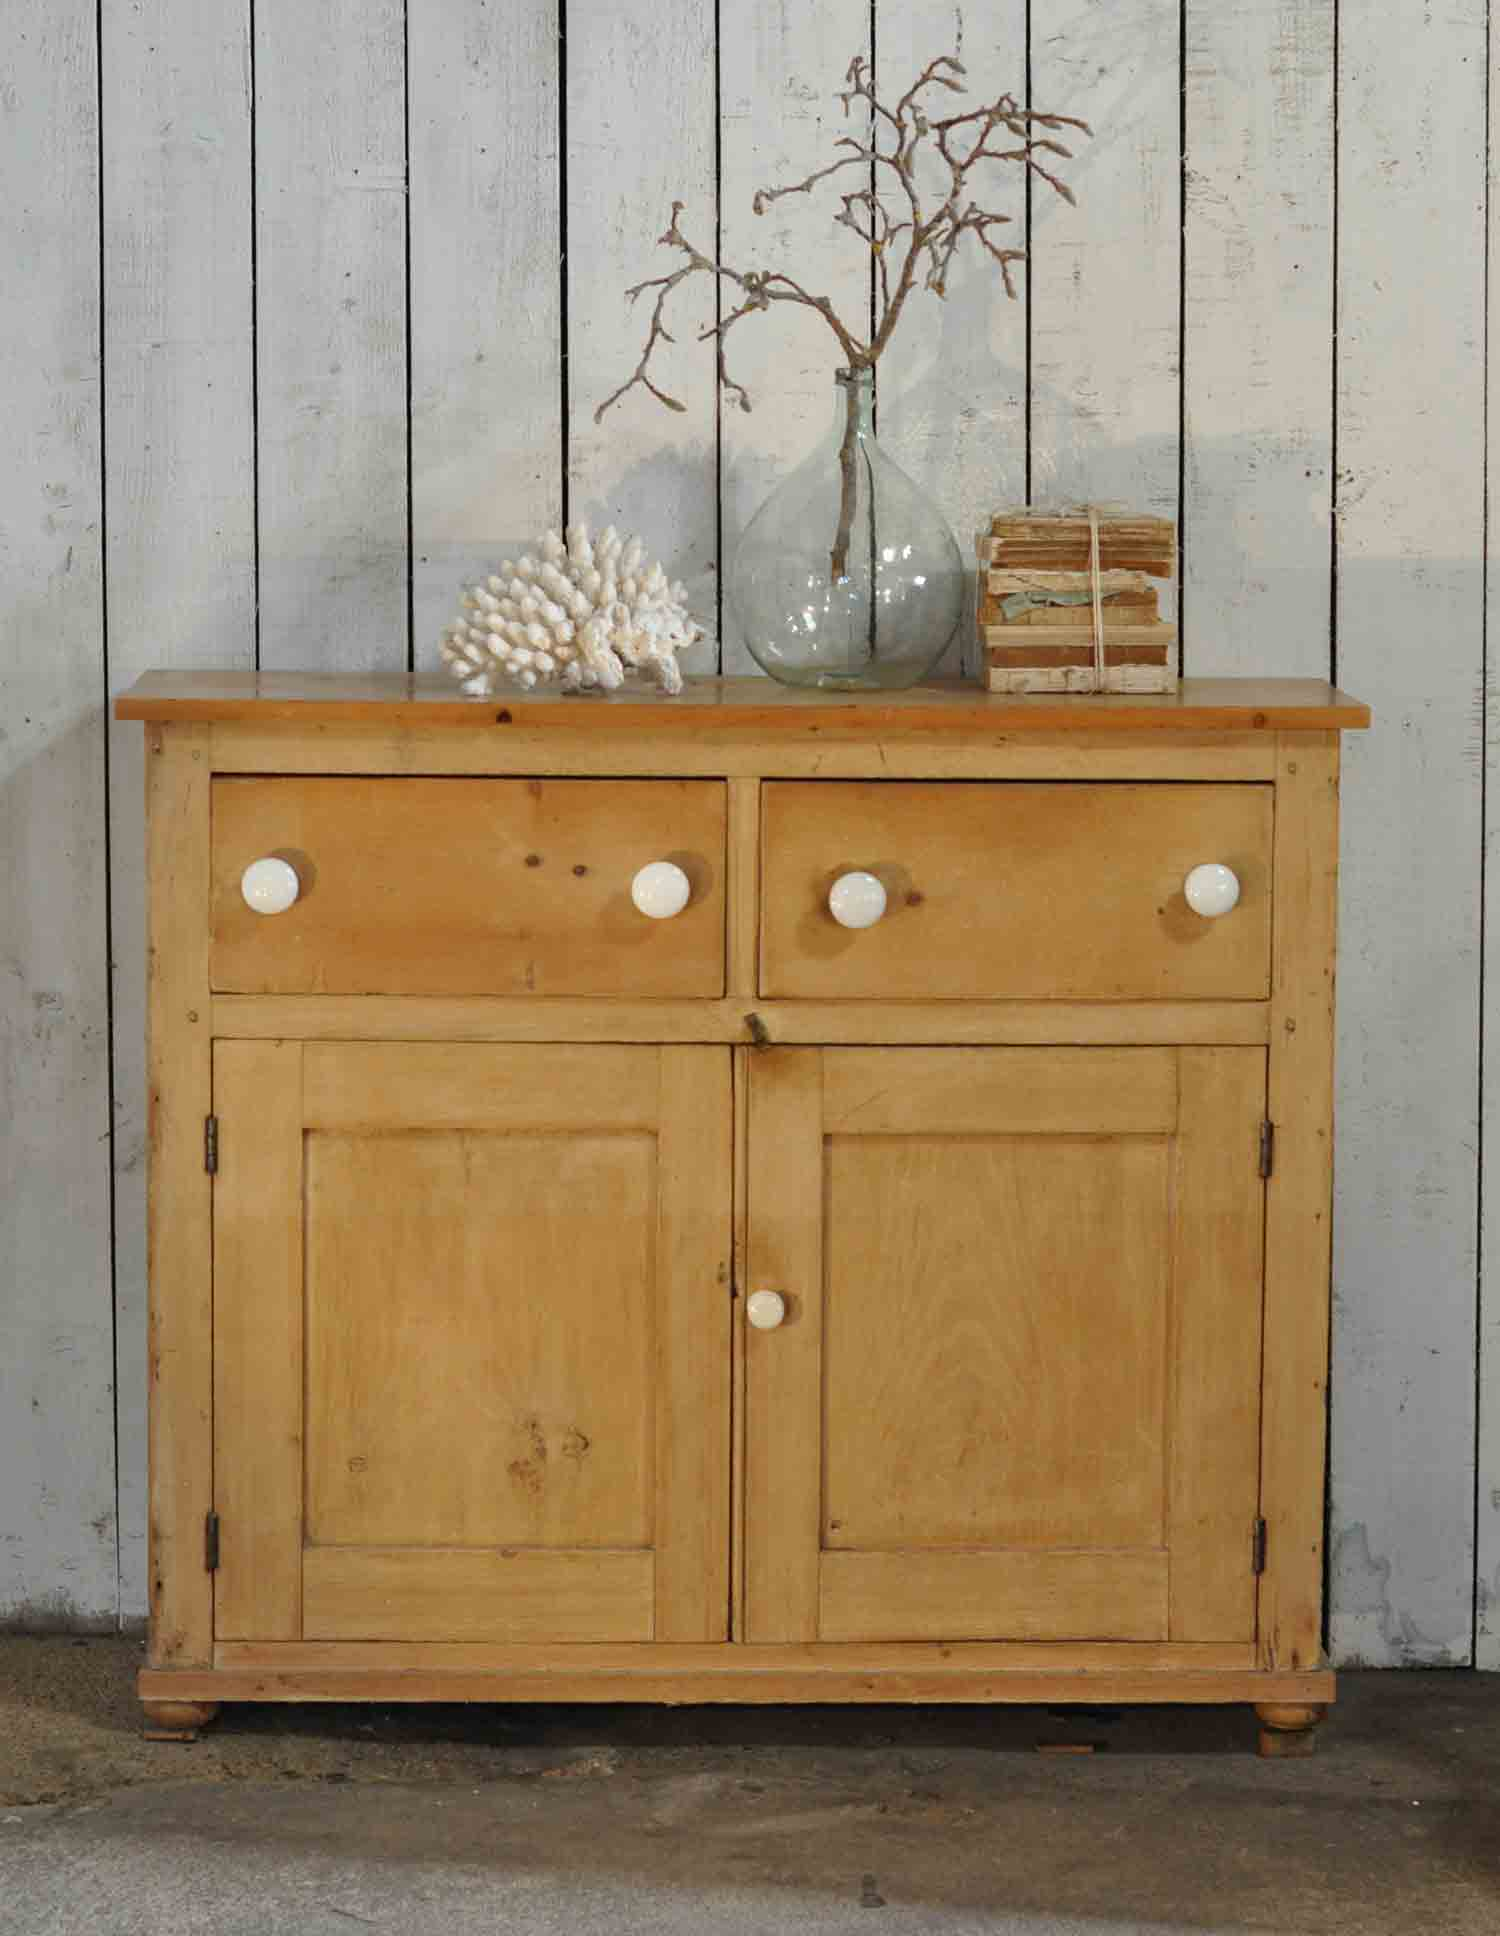 Cupboard Drawers Antique Pine School Cabinet Two Drawers Over Two Cupboard Doors